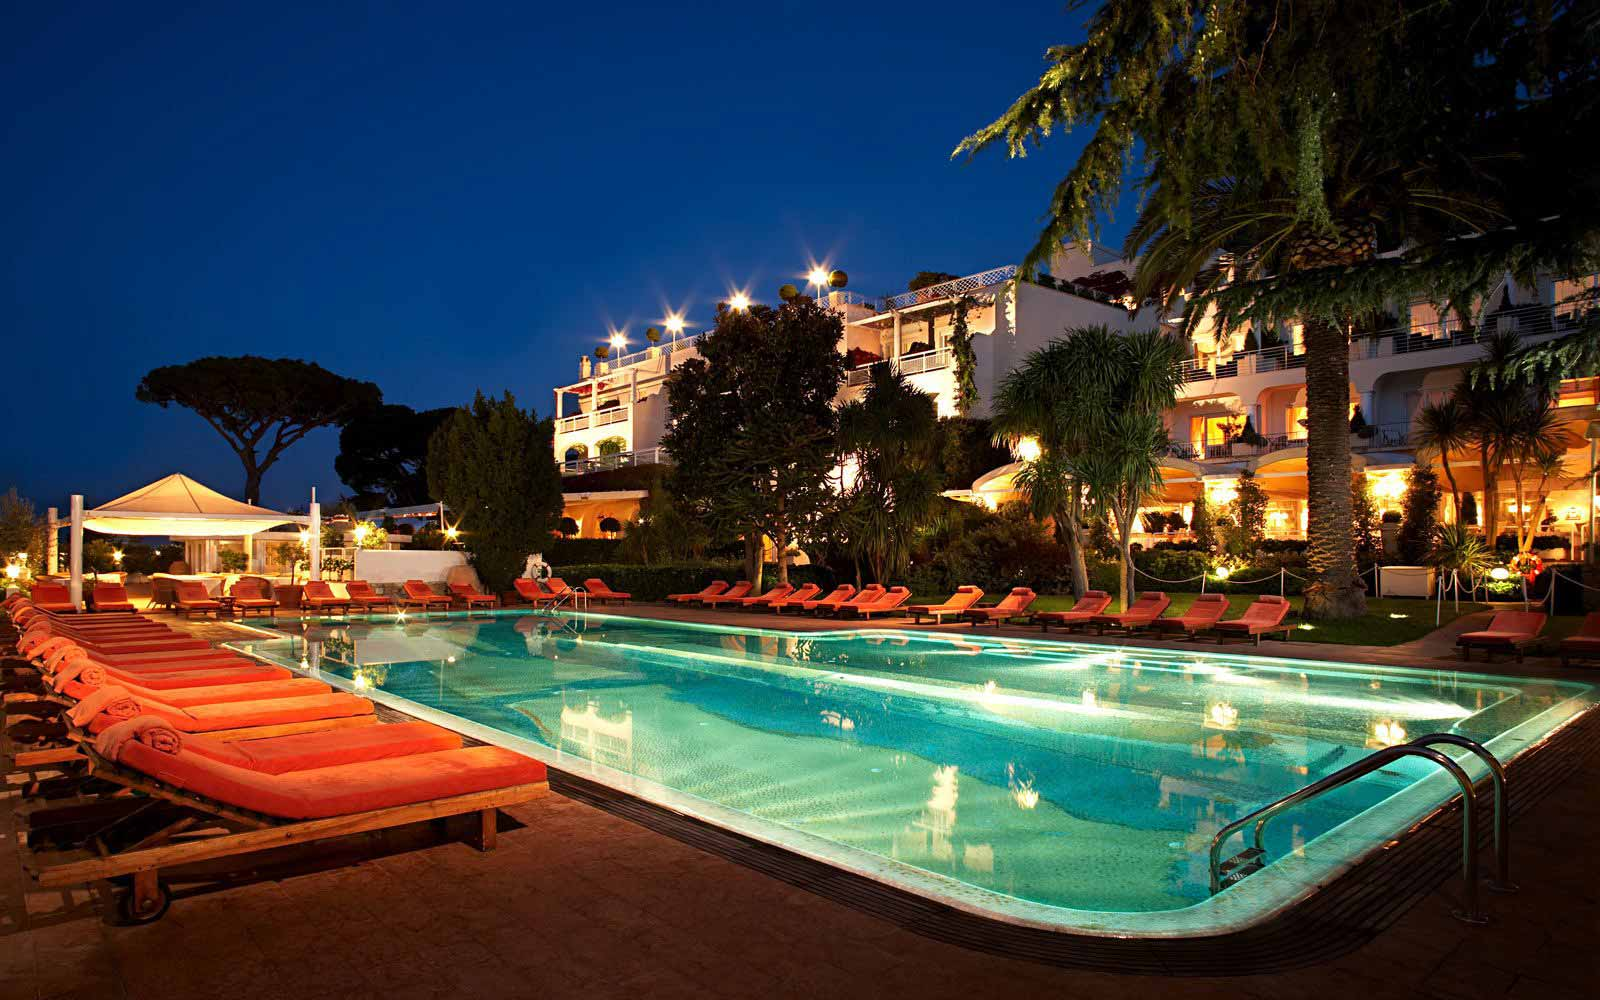 Swimming pool at Capri Palace Hotel & Spa